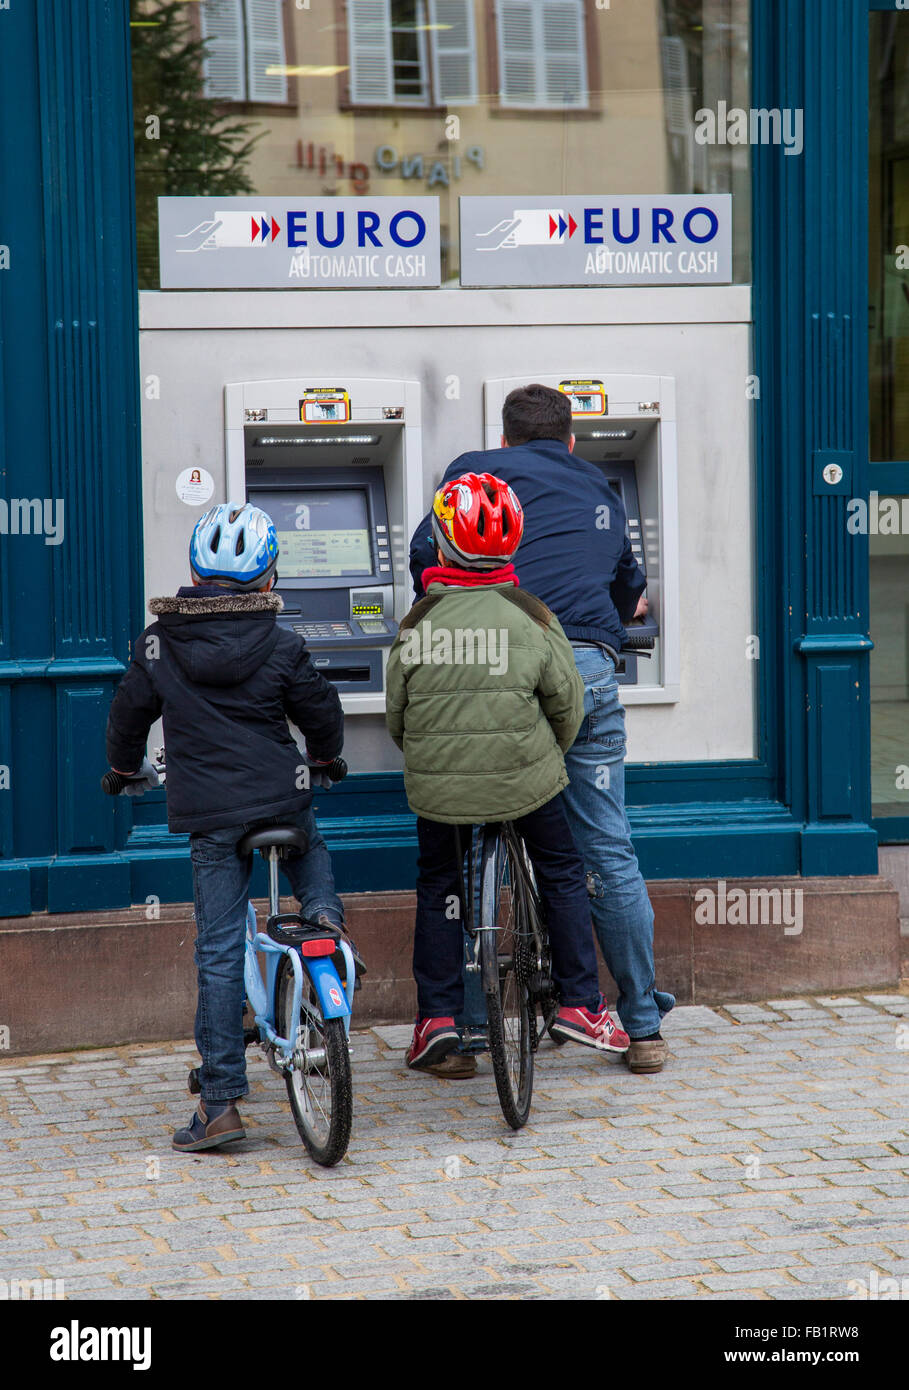 Person with 2 kids at a banking machine, getting cash - Stock Image